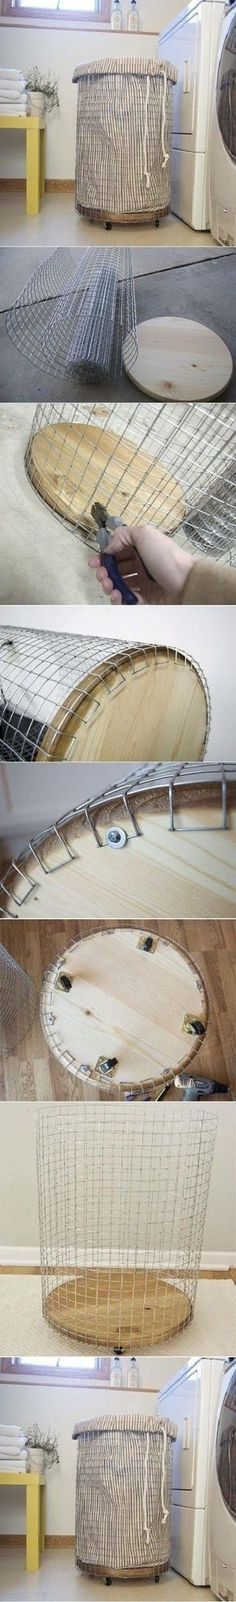 You'll need:  Circle of wood Wire 4 caster rollers, and appropriate washers and screws fabric rope tools and sewing equipment  Basket: Use w...